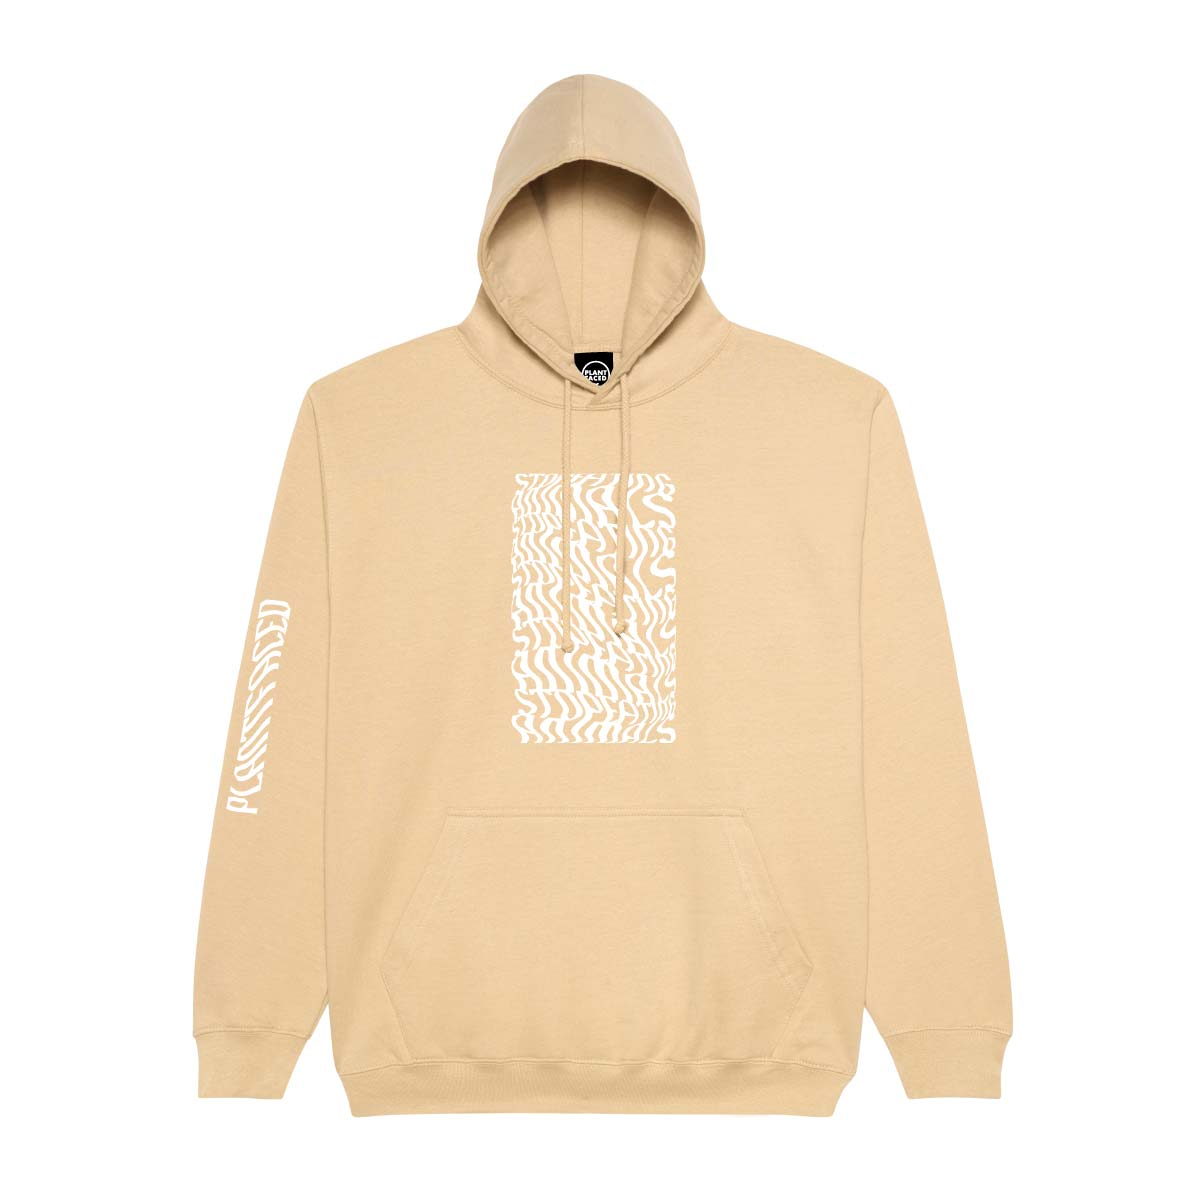 Illusions Hoodie - Stop Eating Animals - Earth Beige